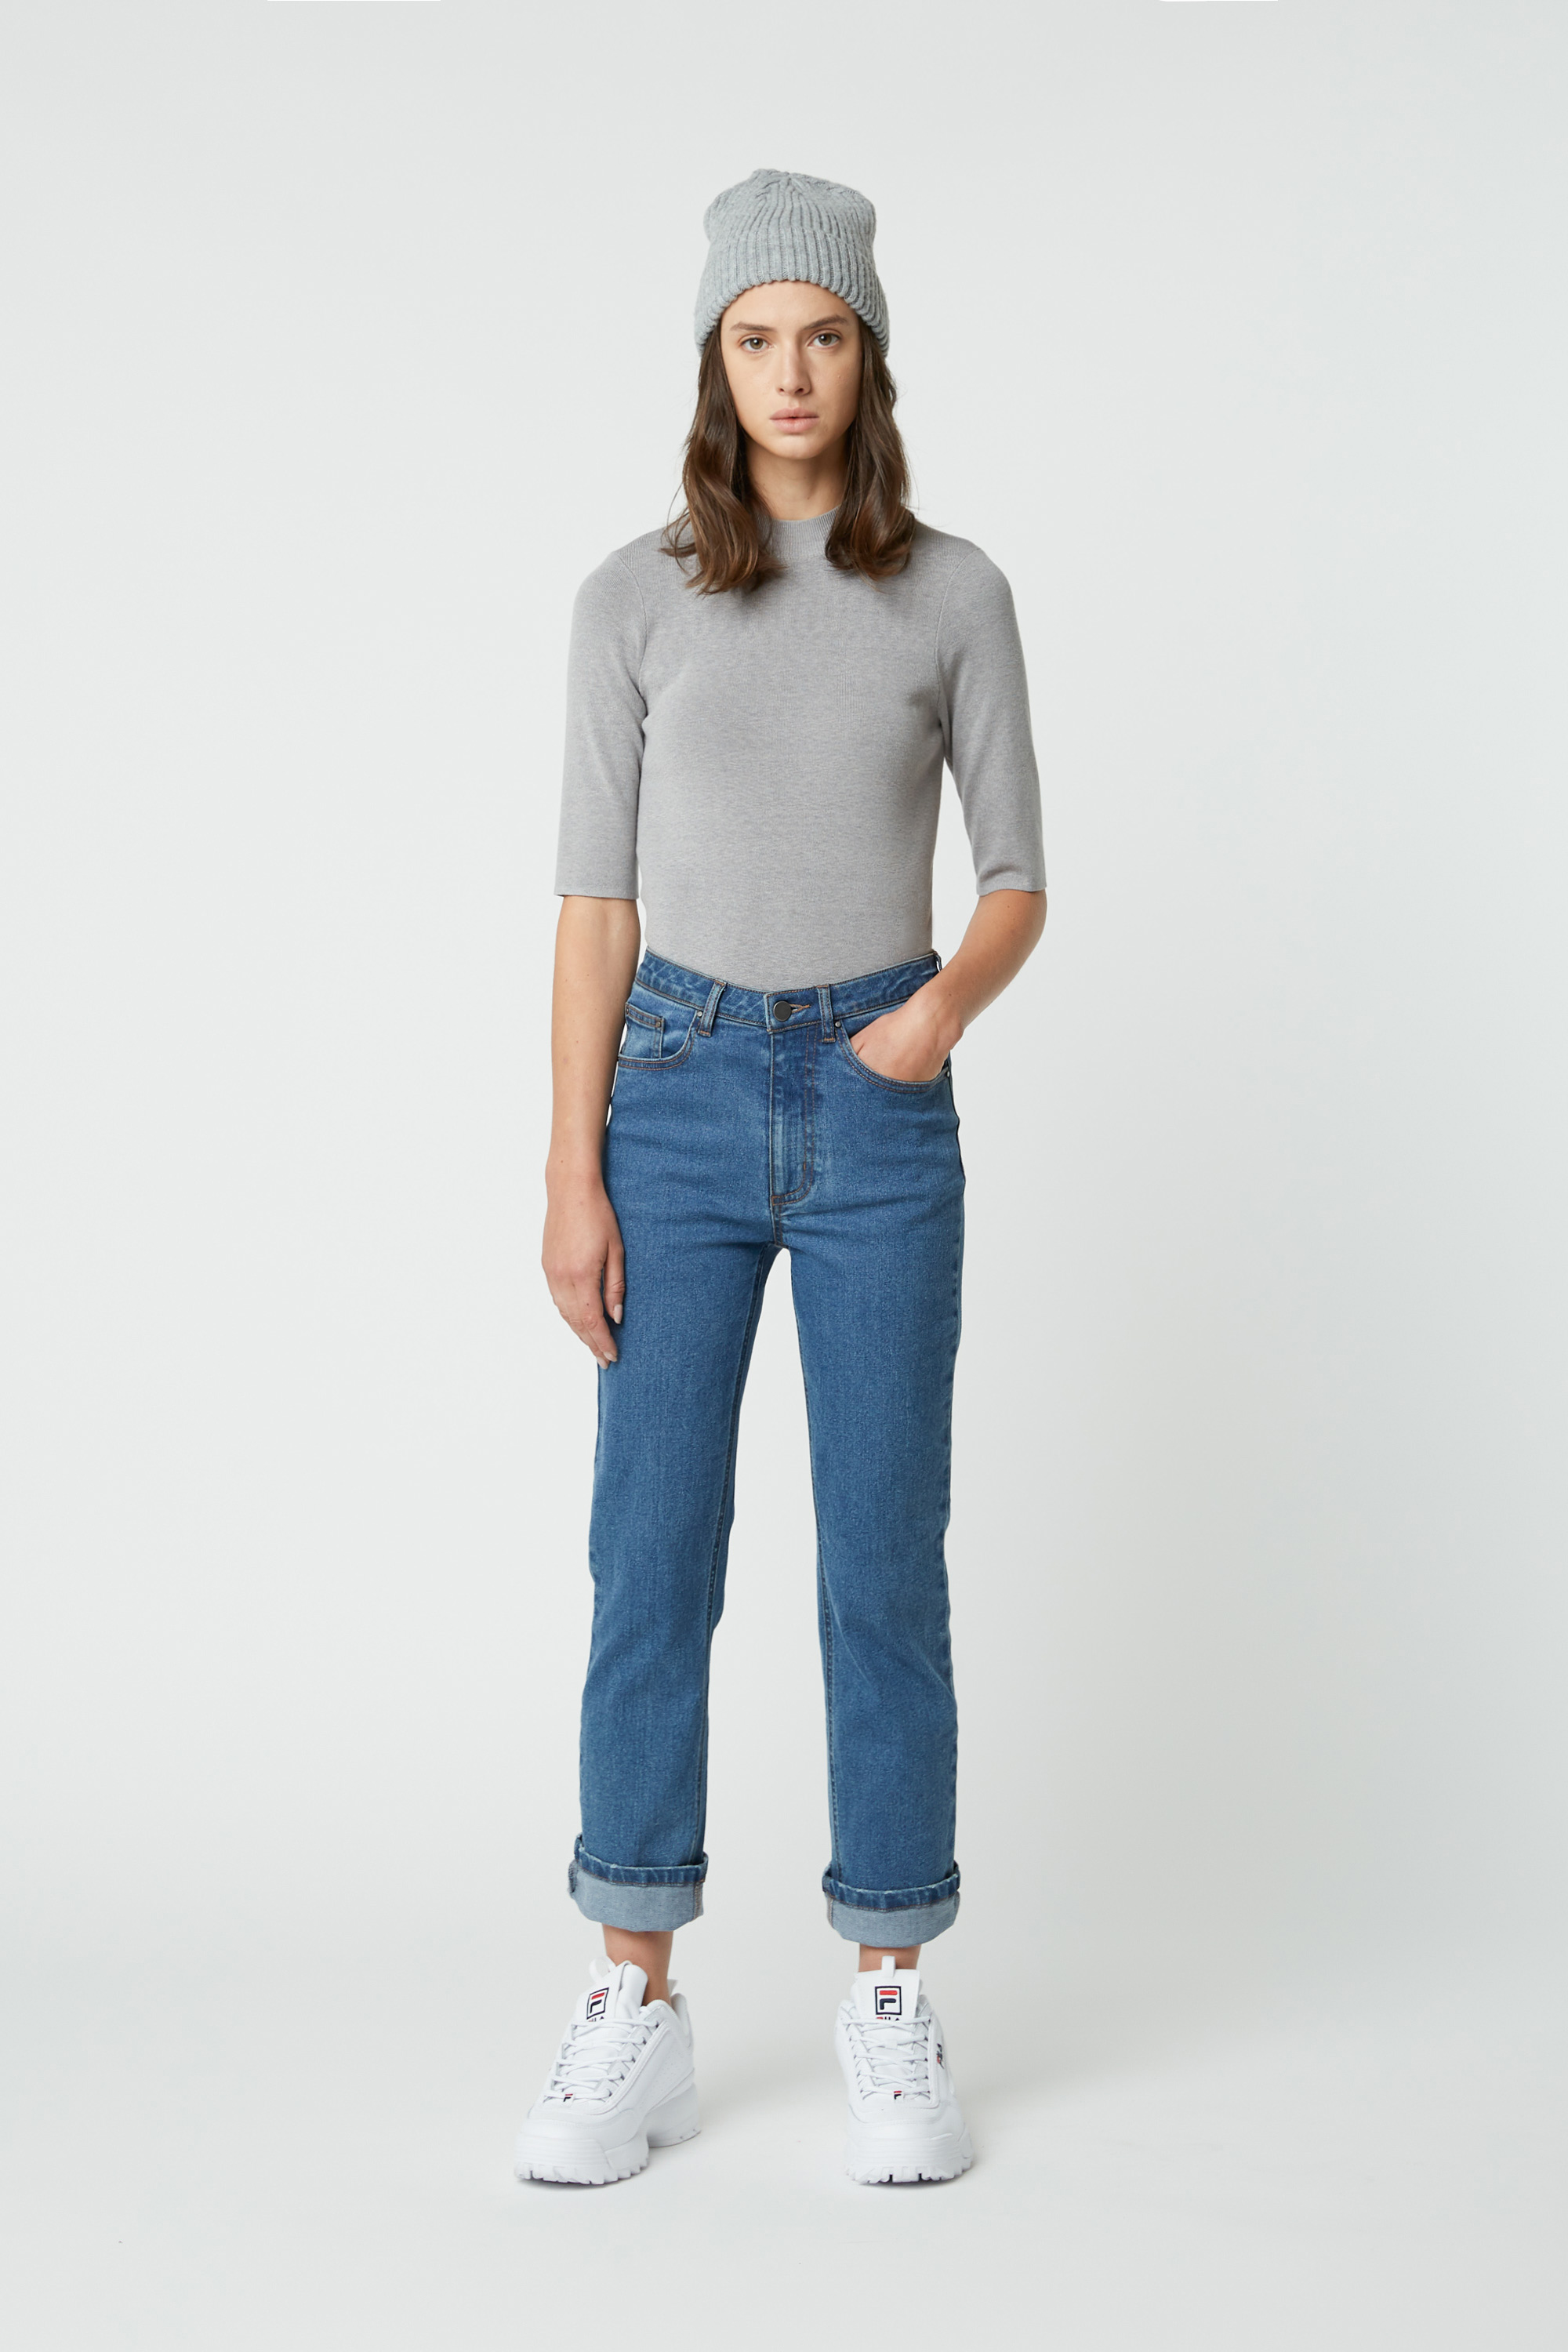 Sweater 24992018 Heather Light Gray 4